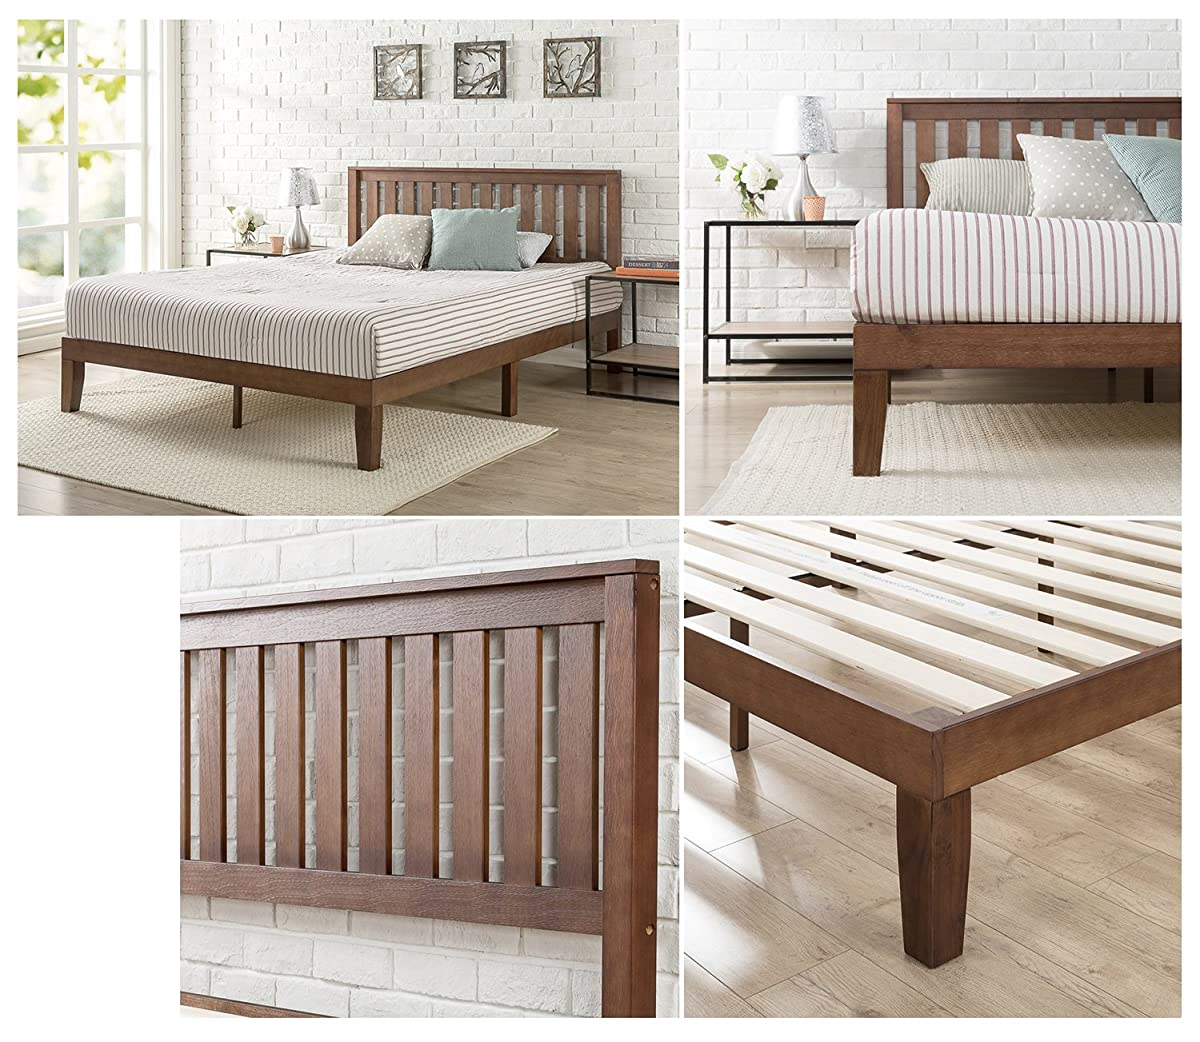 Zinus 12 Inch Wood Platform Bed with Headboard/No Box Spring Needed/Wood Slat Support/Antique Espresso Finish, Full